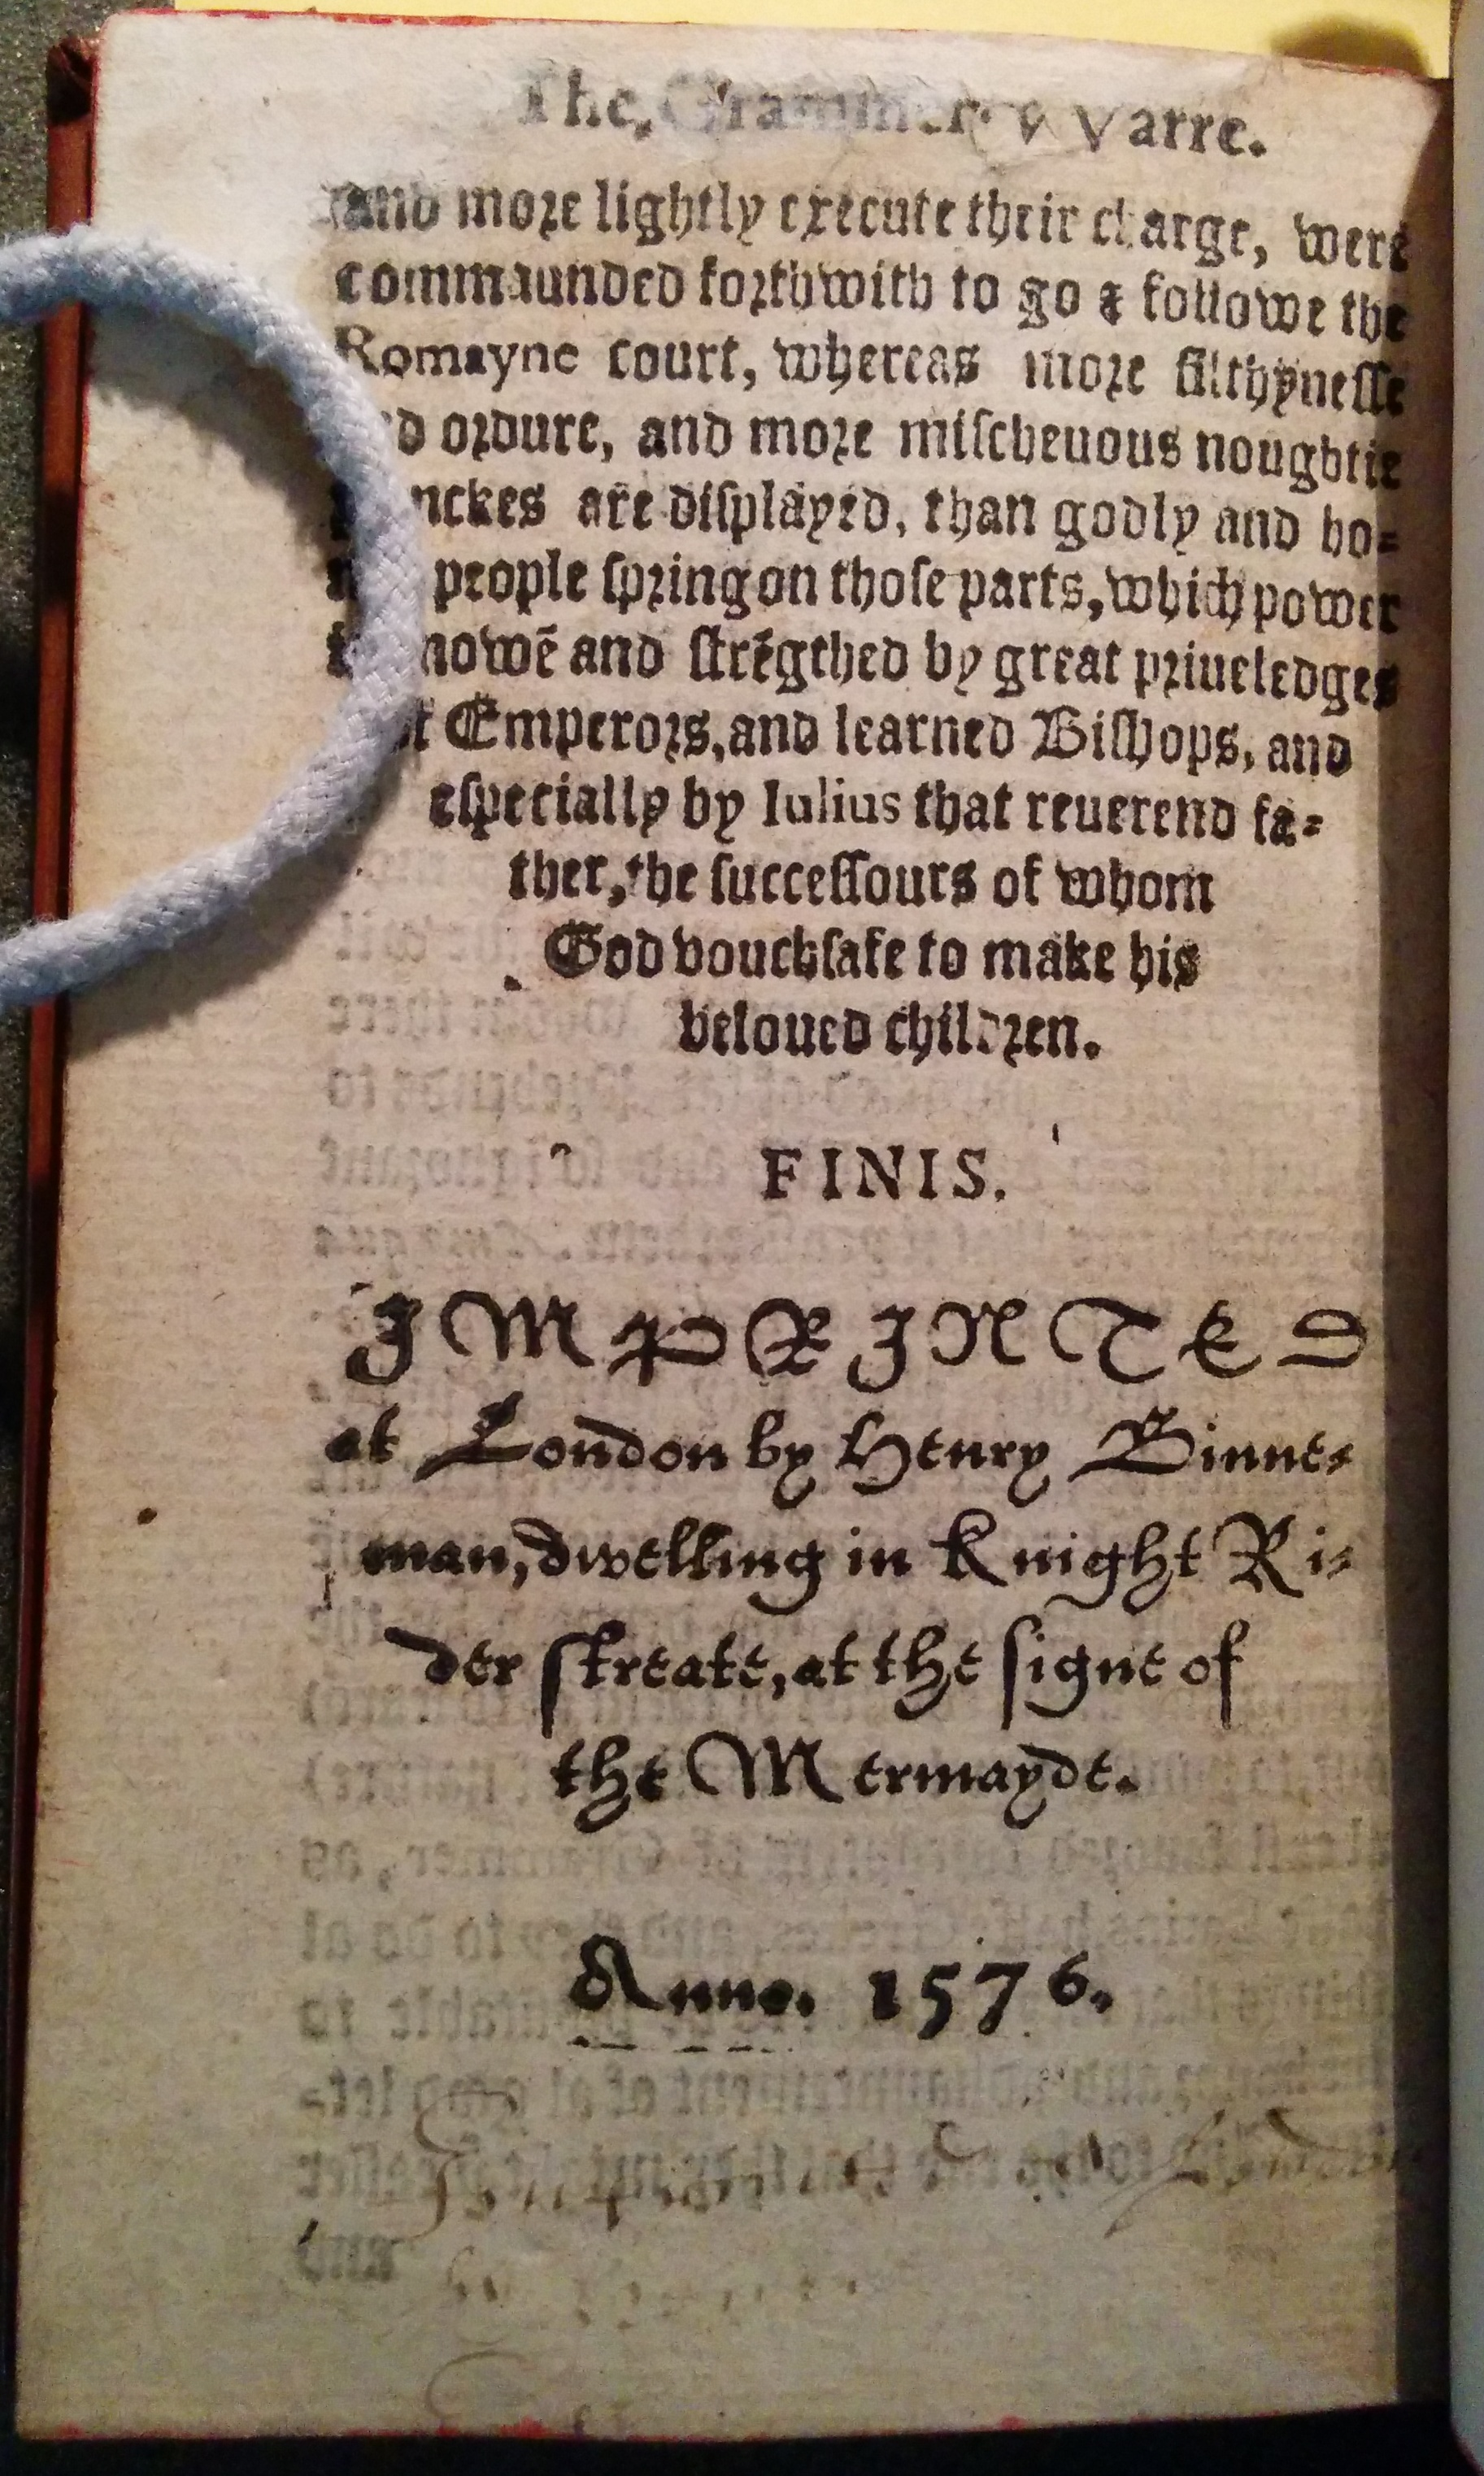 Colophon of Folger copy of STC 12420. An early reader tried copying the secretary type of the colophon in a secretary hand.